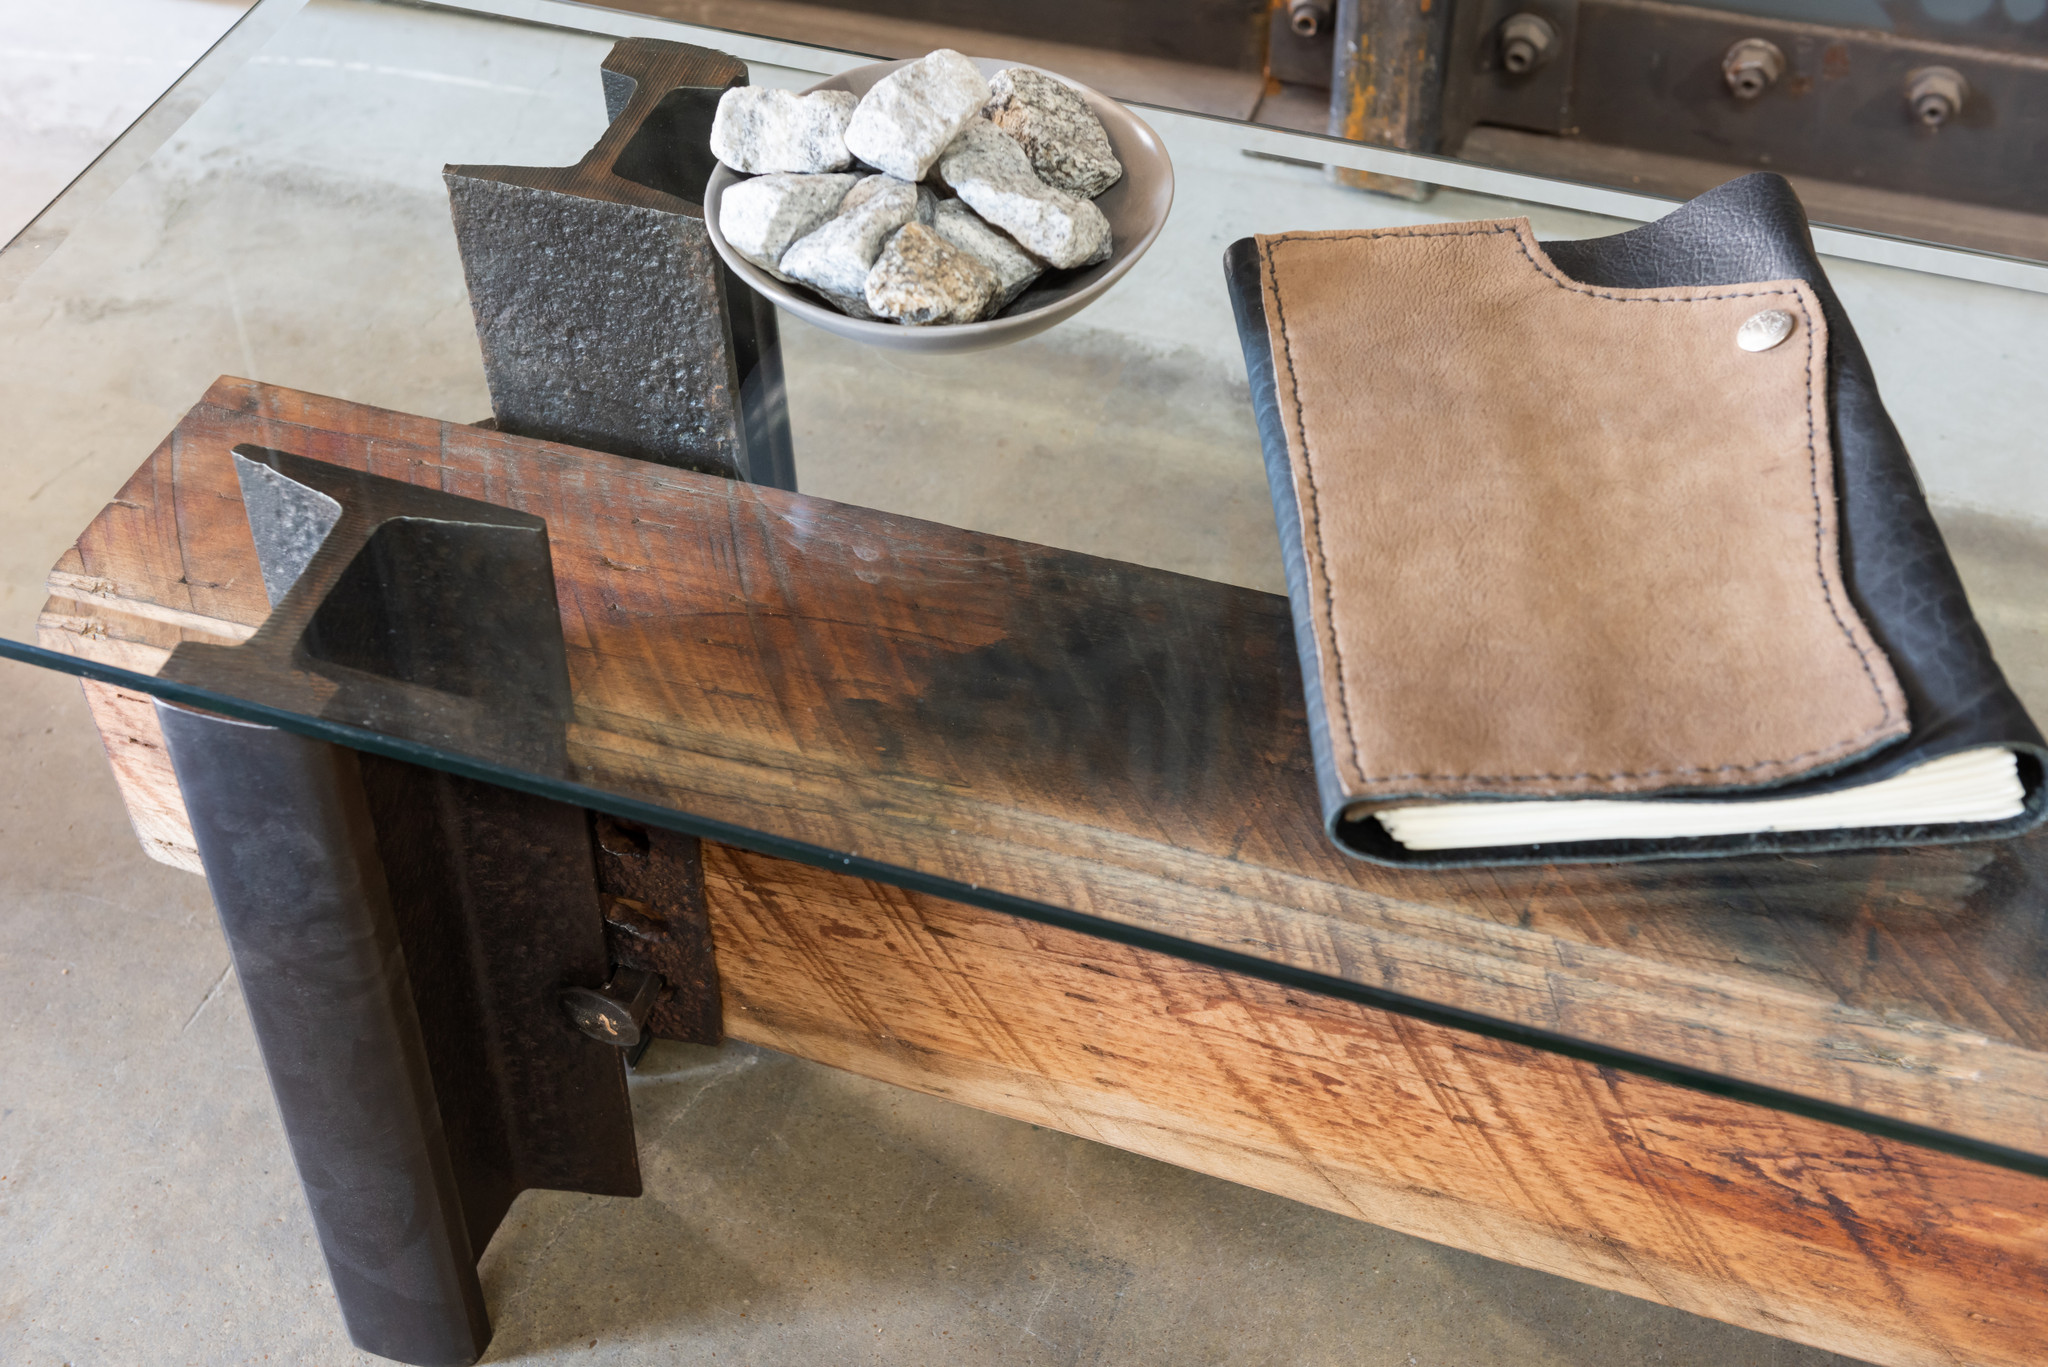 buffalo hide journal atop wood and steel coffee table